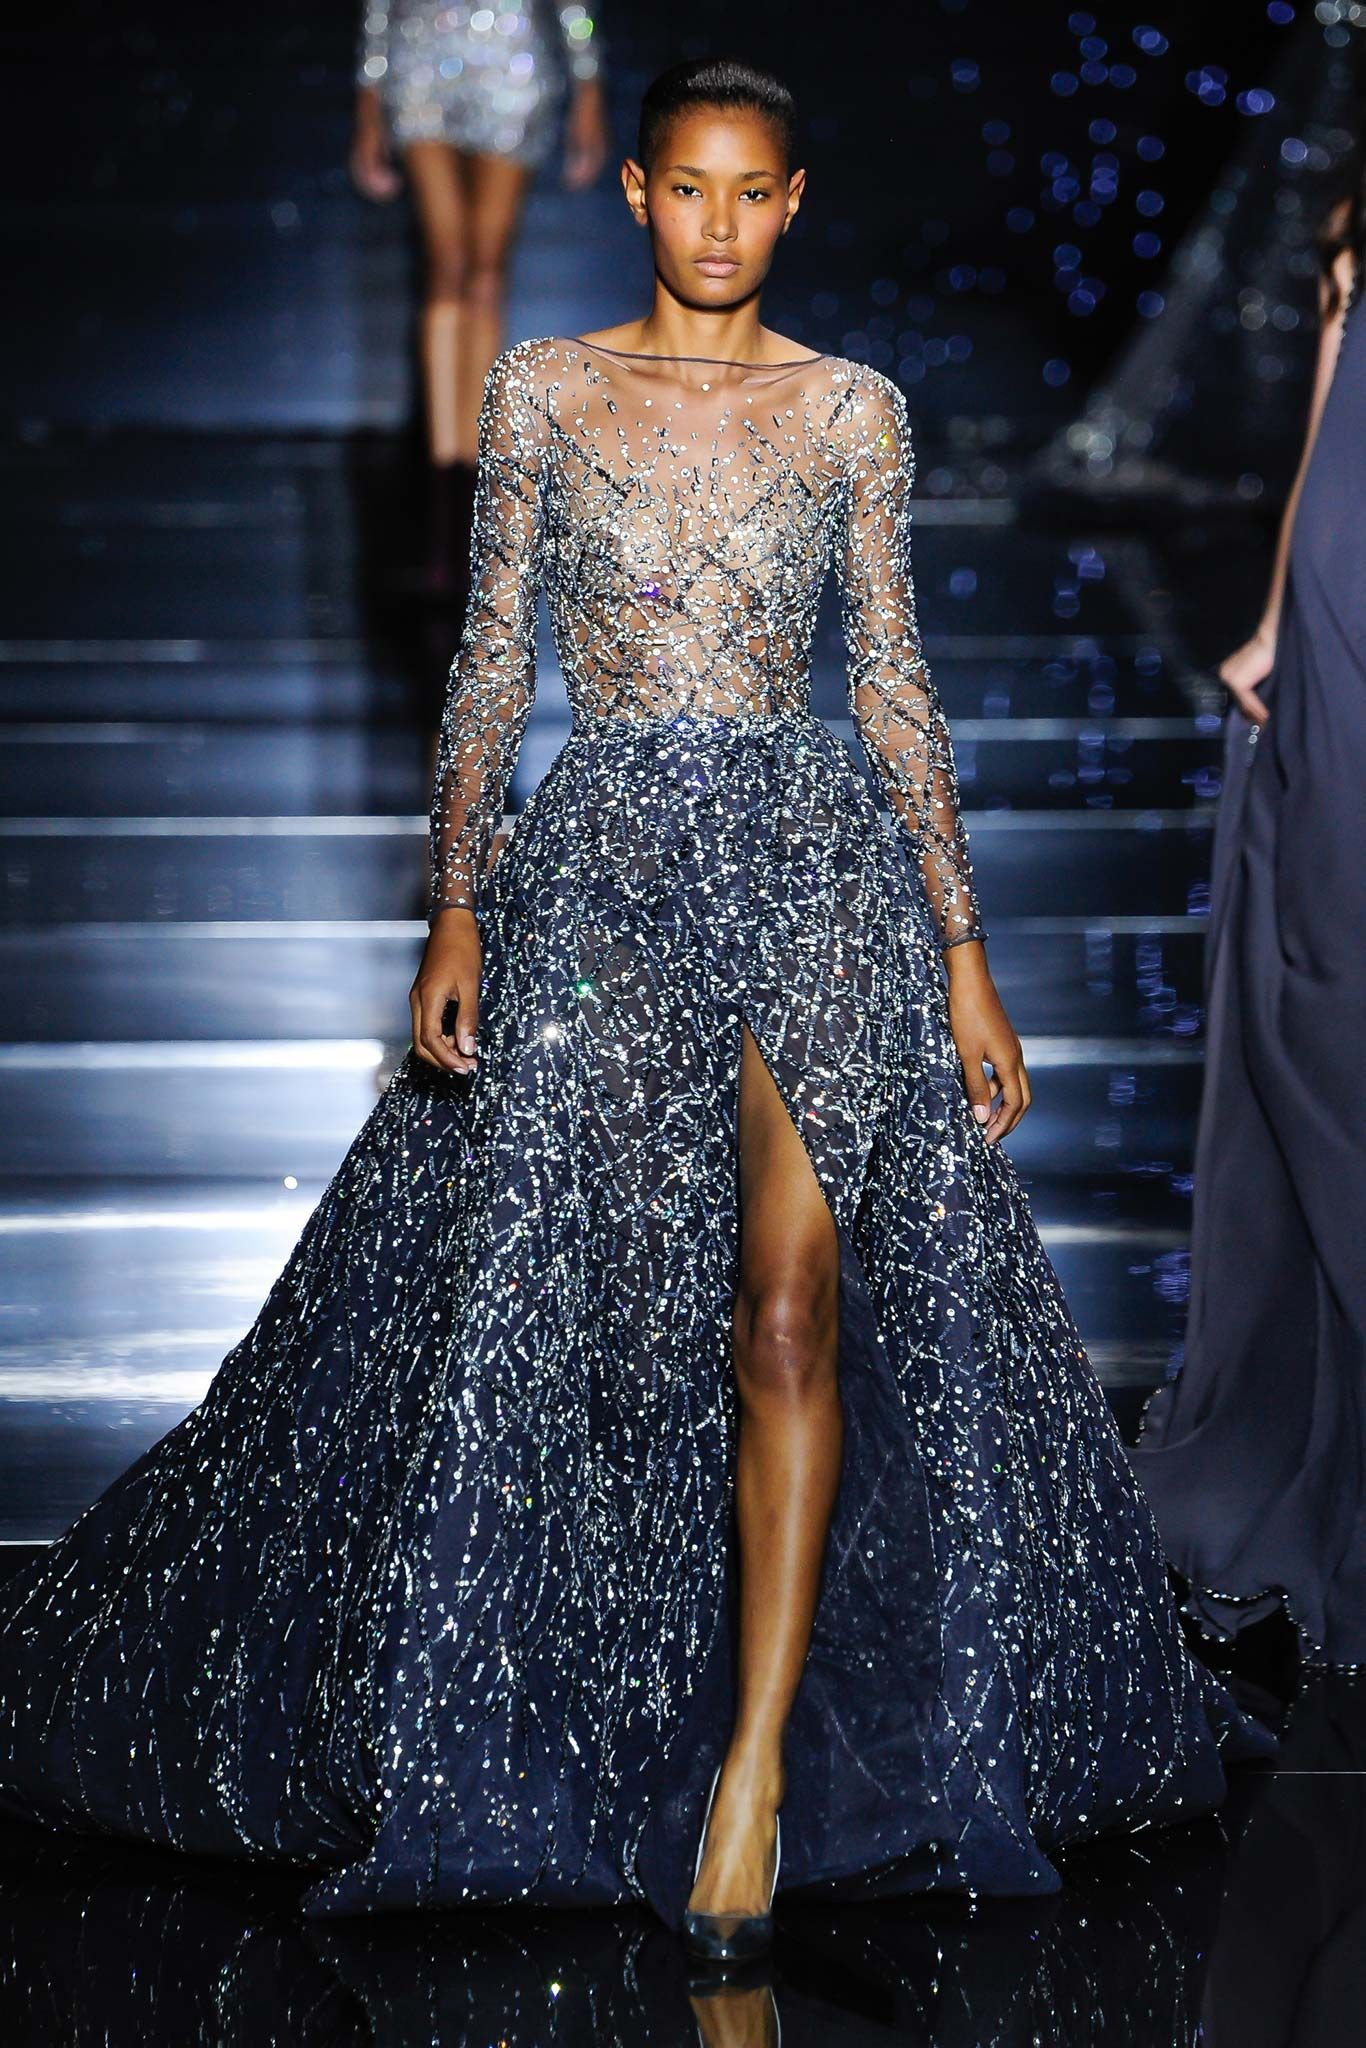 RUNWAY: Zuhair Murad Fall 2015 Couture Collection